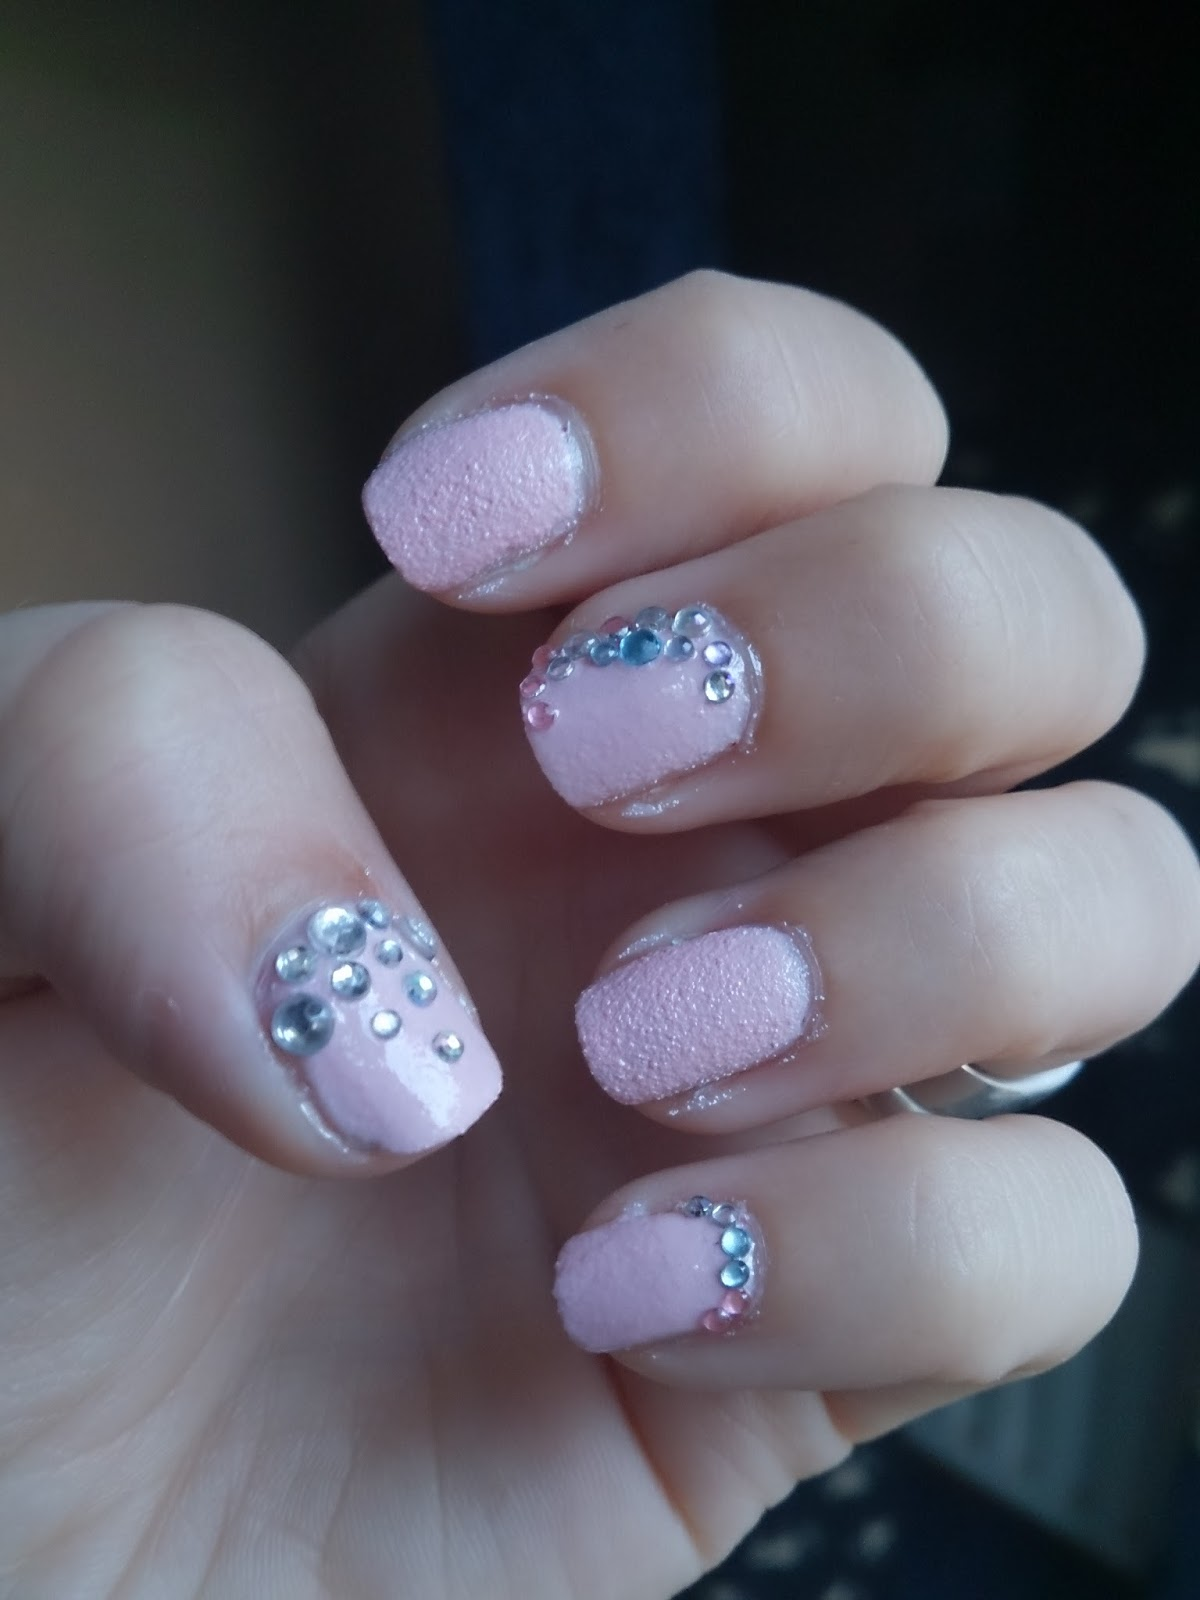 crystal rhinestone nails barry m textured polish kingsland road design pink